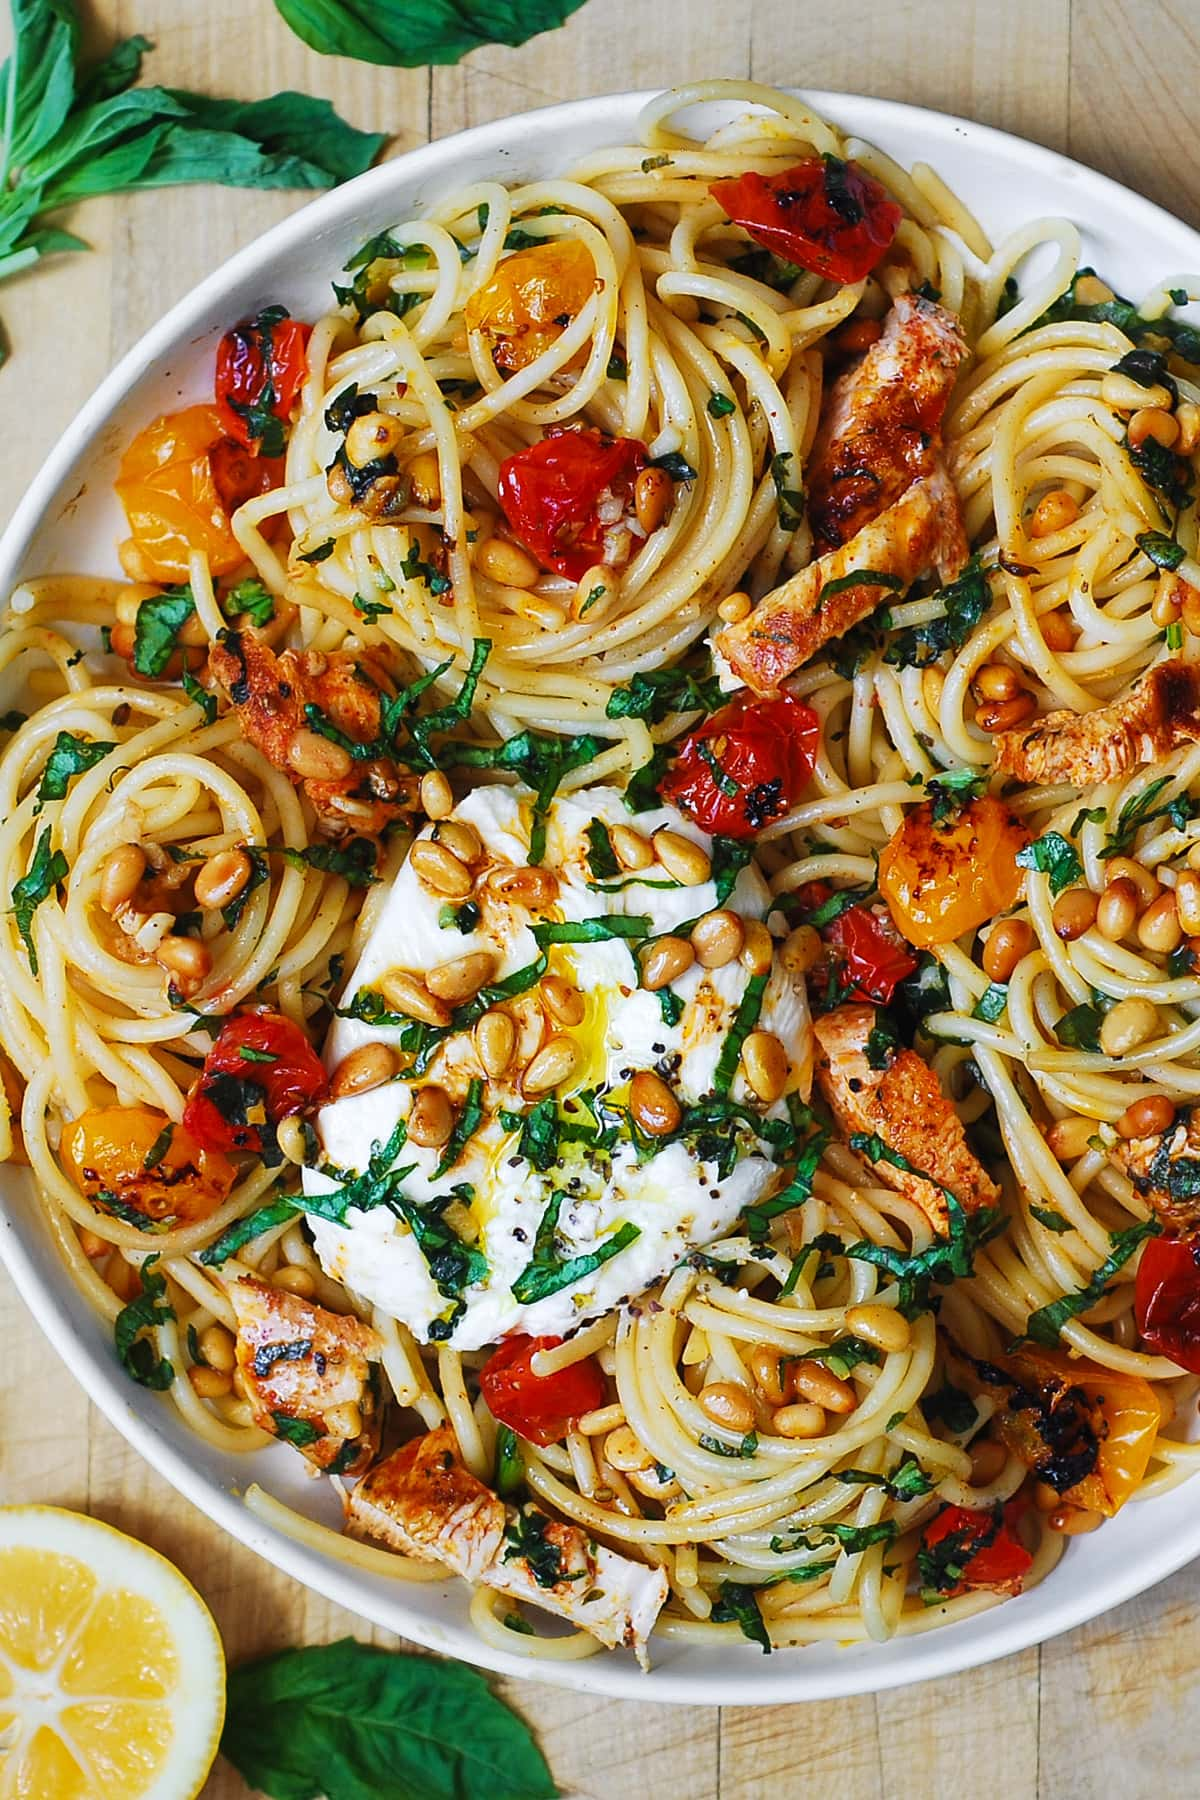 chicken spaghetti with burrata cheese, roasted cherry (or grape) tomatoes, pine nuts on a white plate